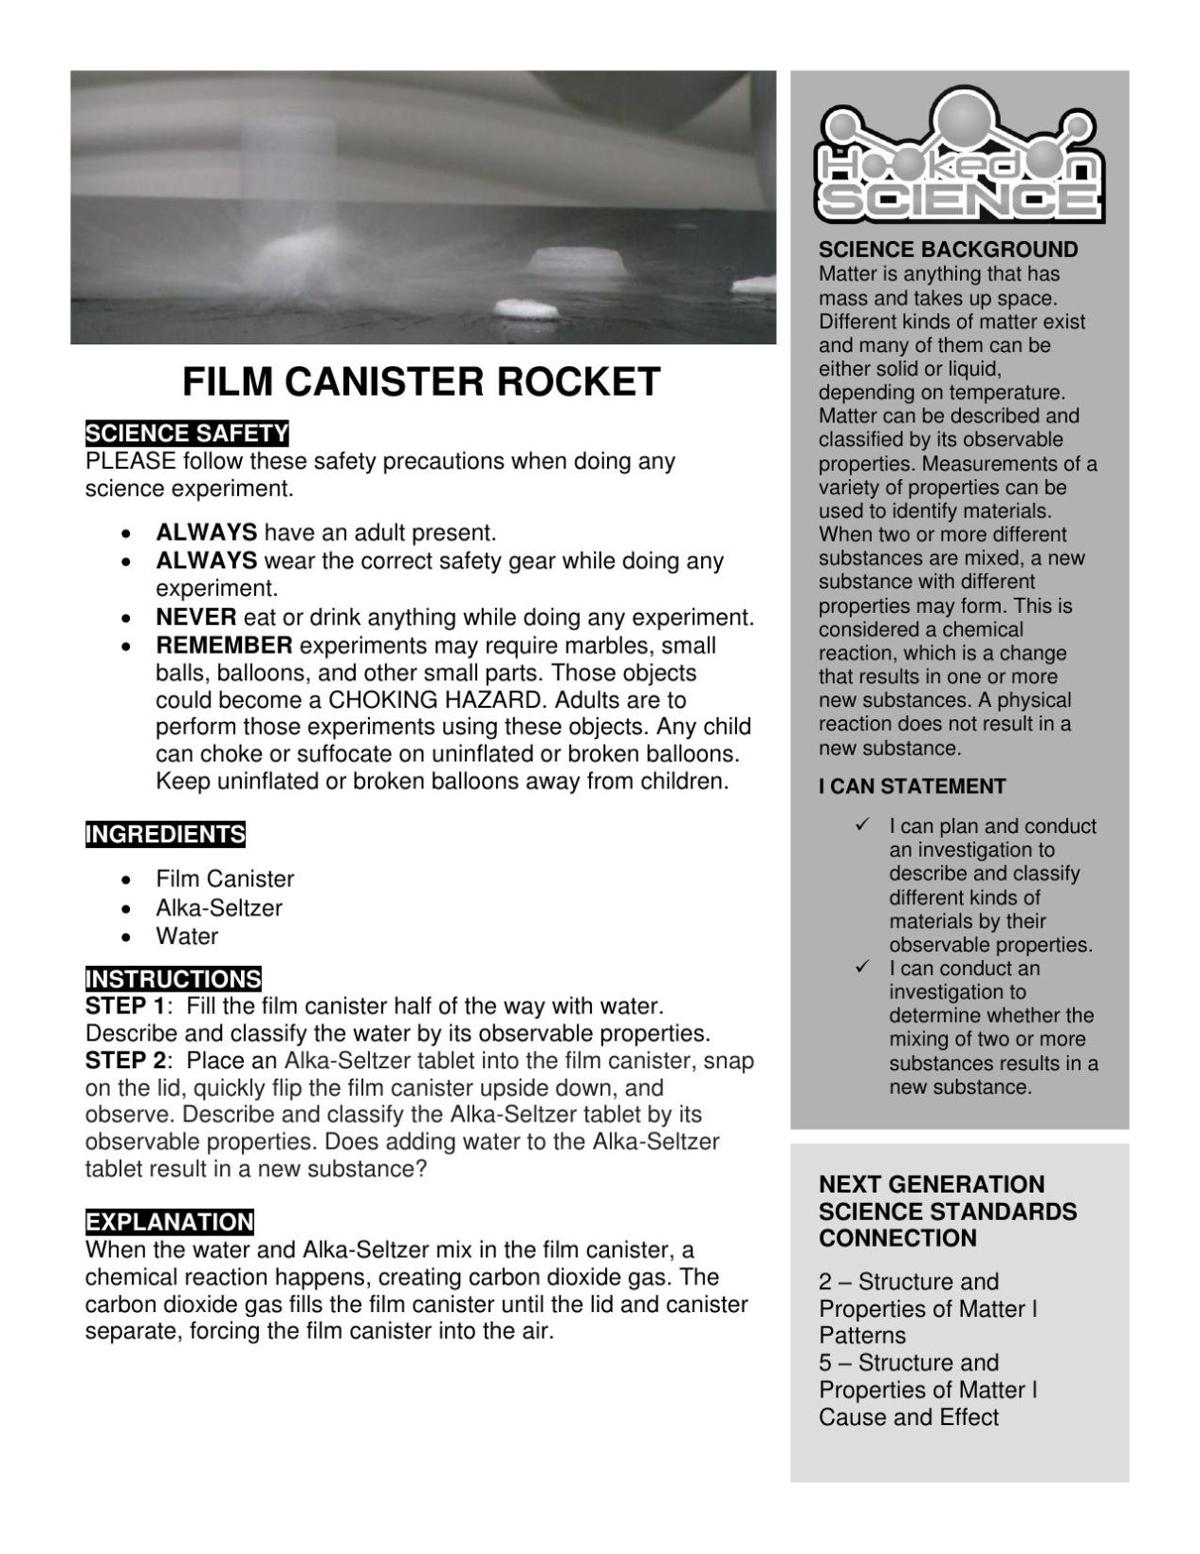 Hooked on Science: Film Canister Rocket